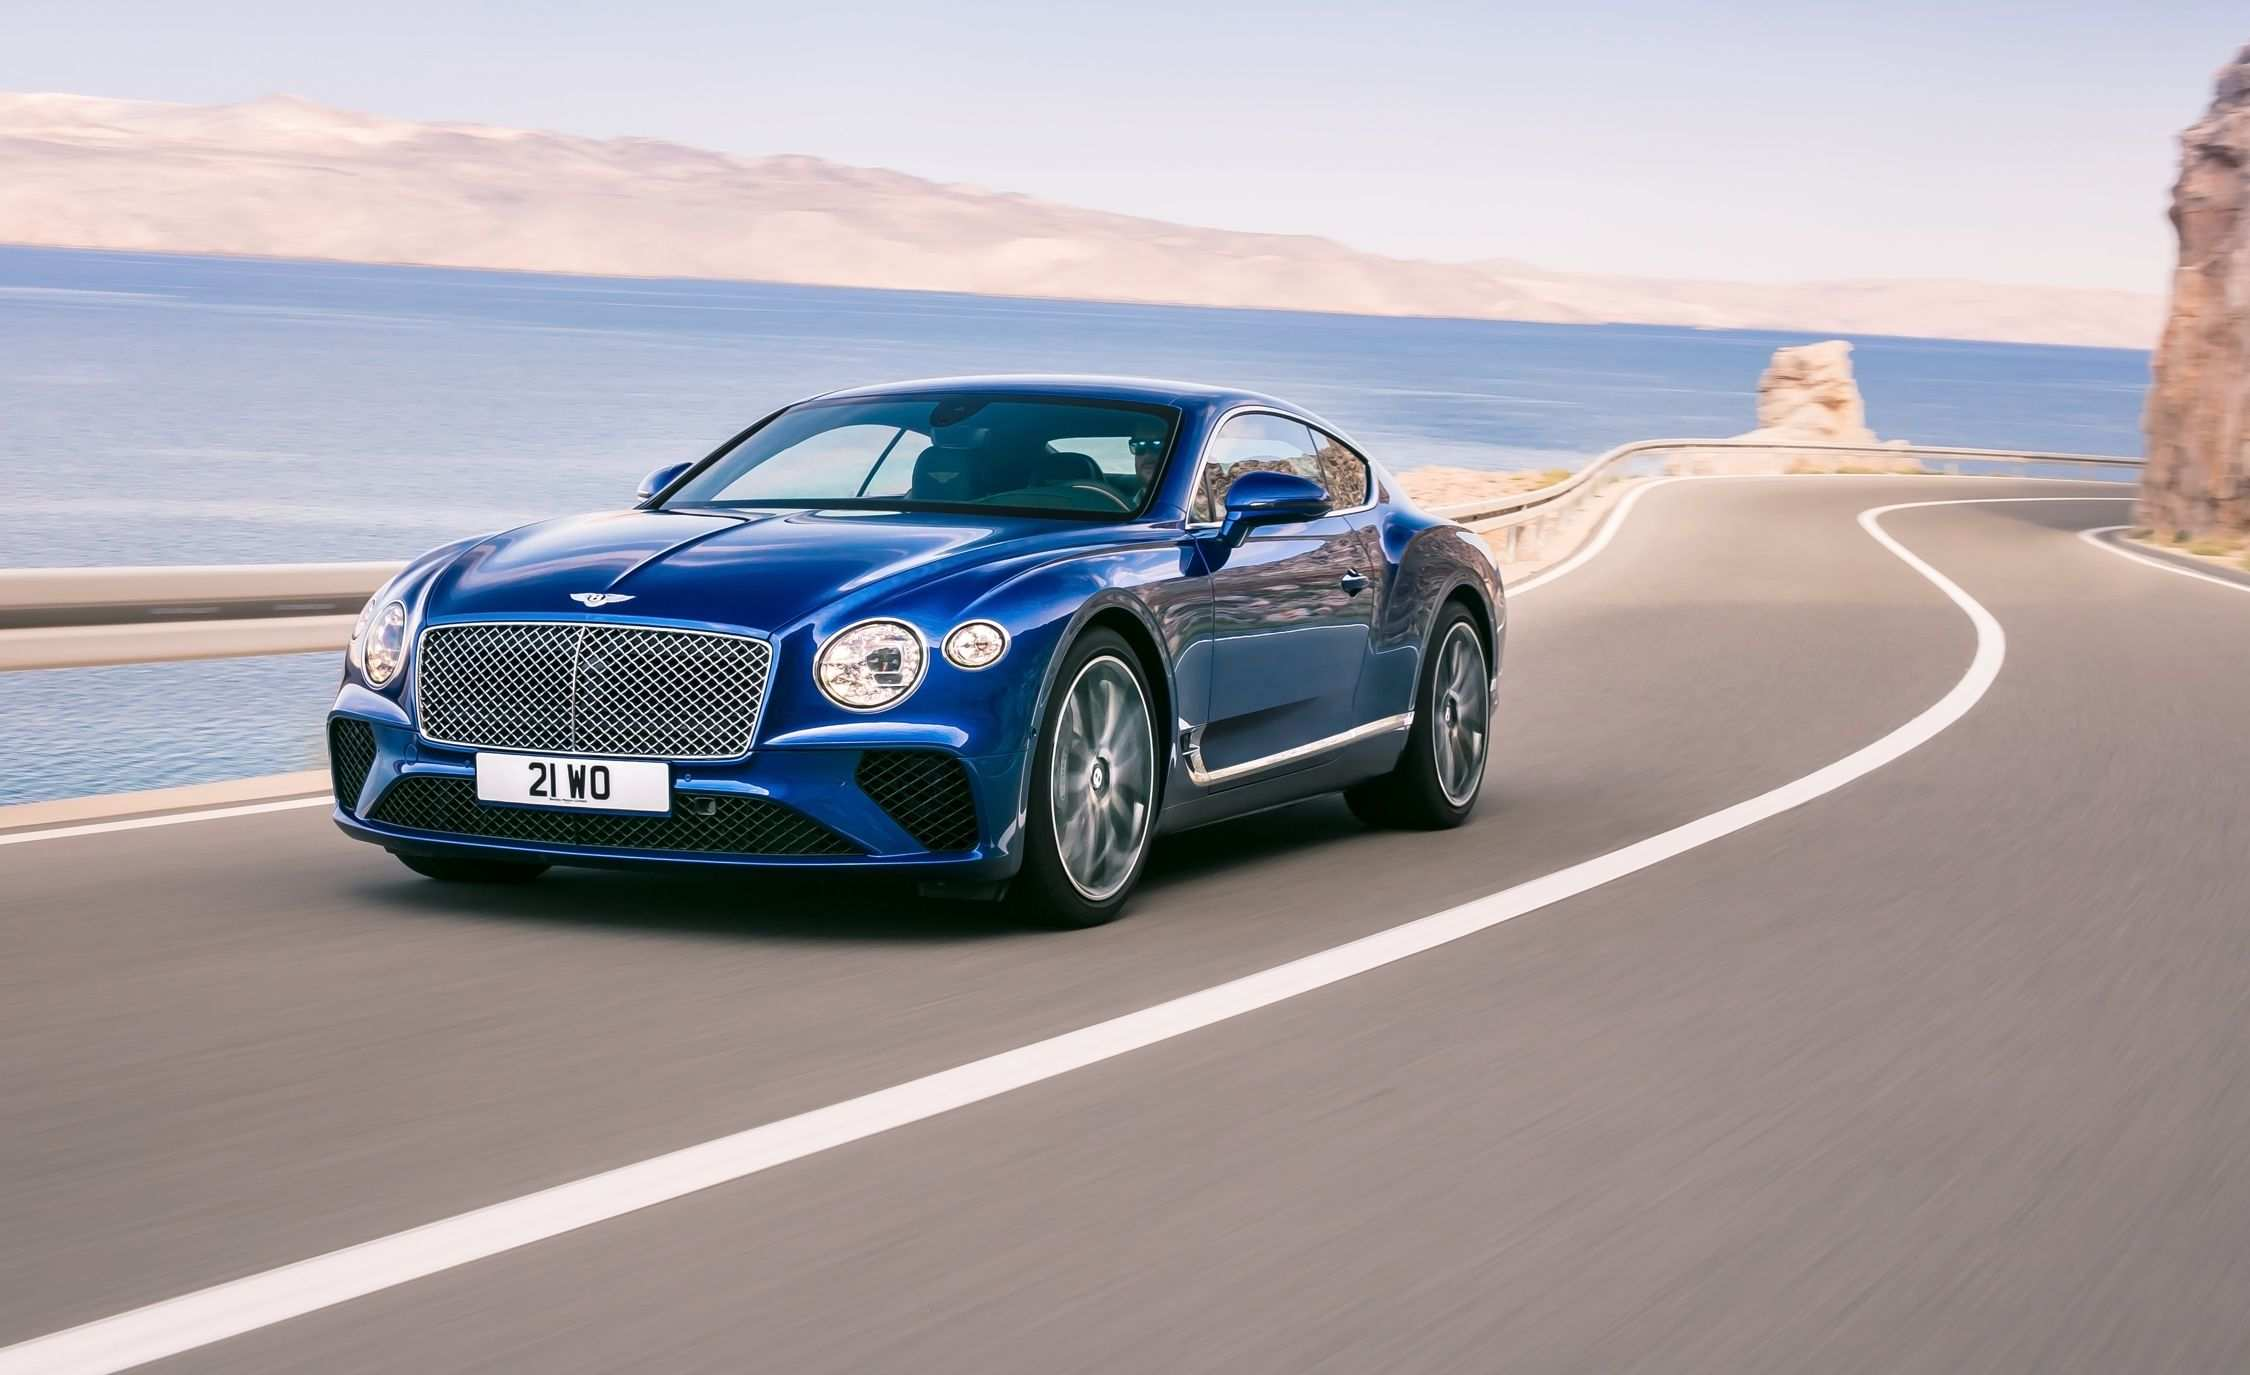 69 Best Review 2019 Bentley Continental Gt Msrp Rumors for 2019 Bentley Continental Gt Msrp